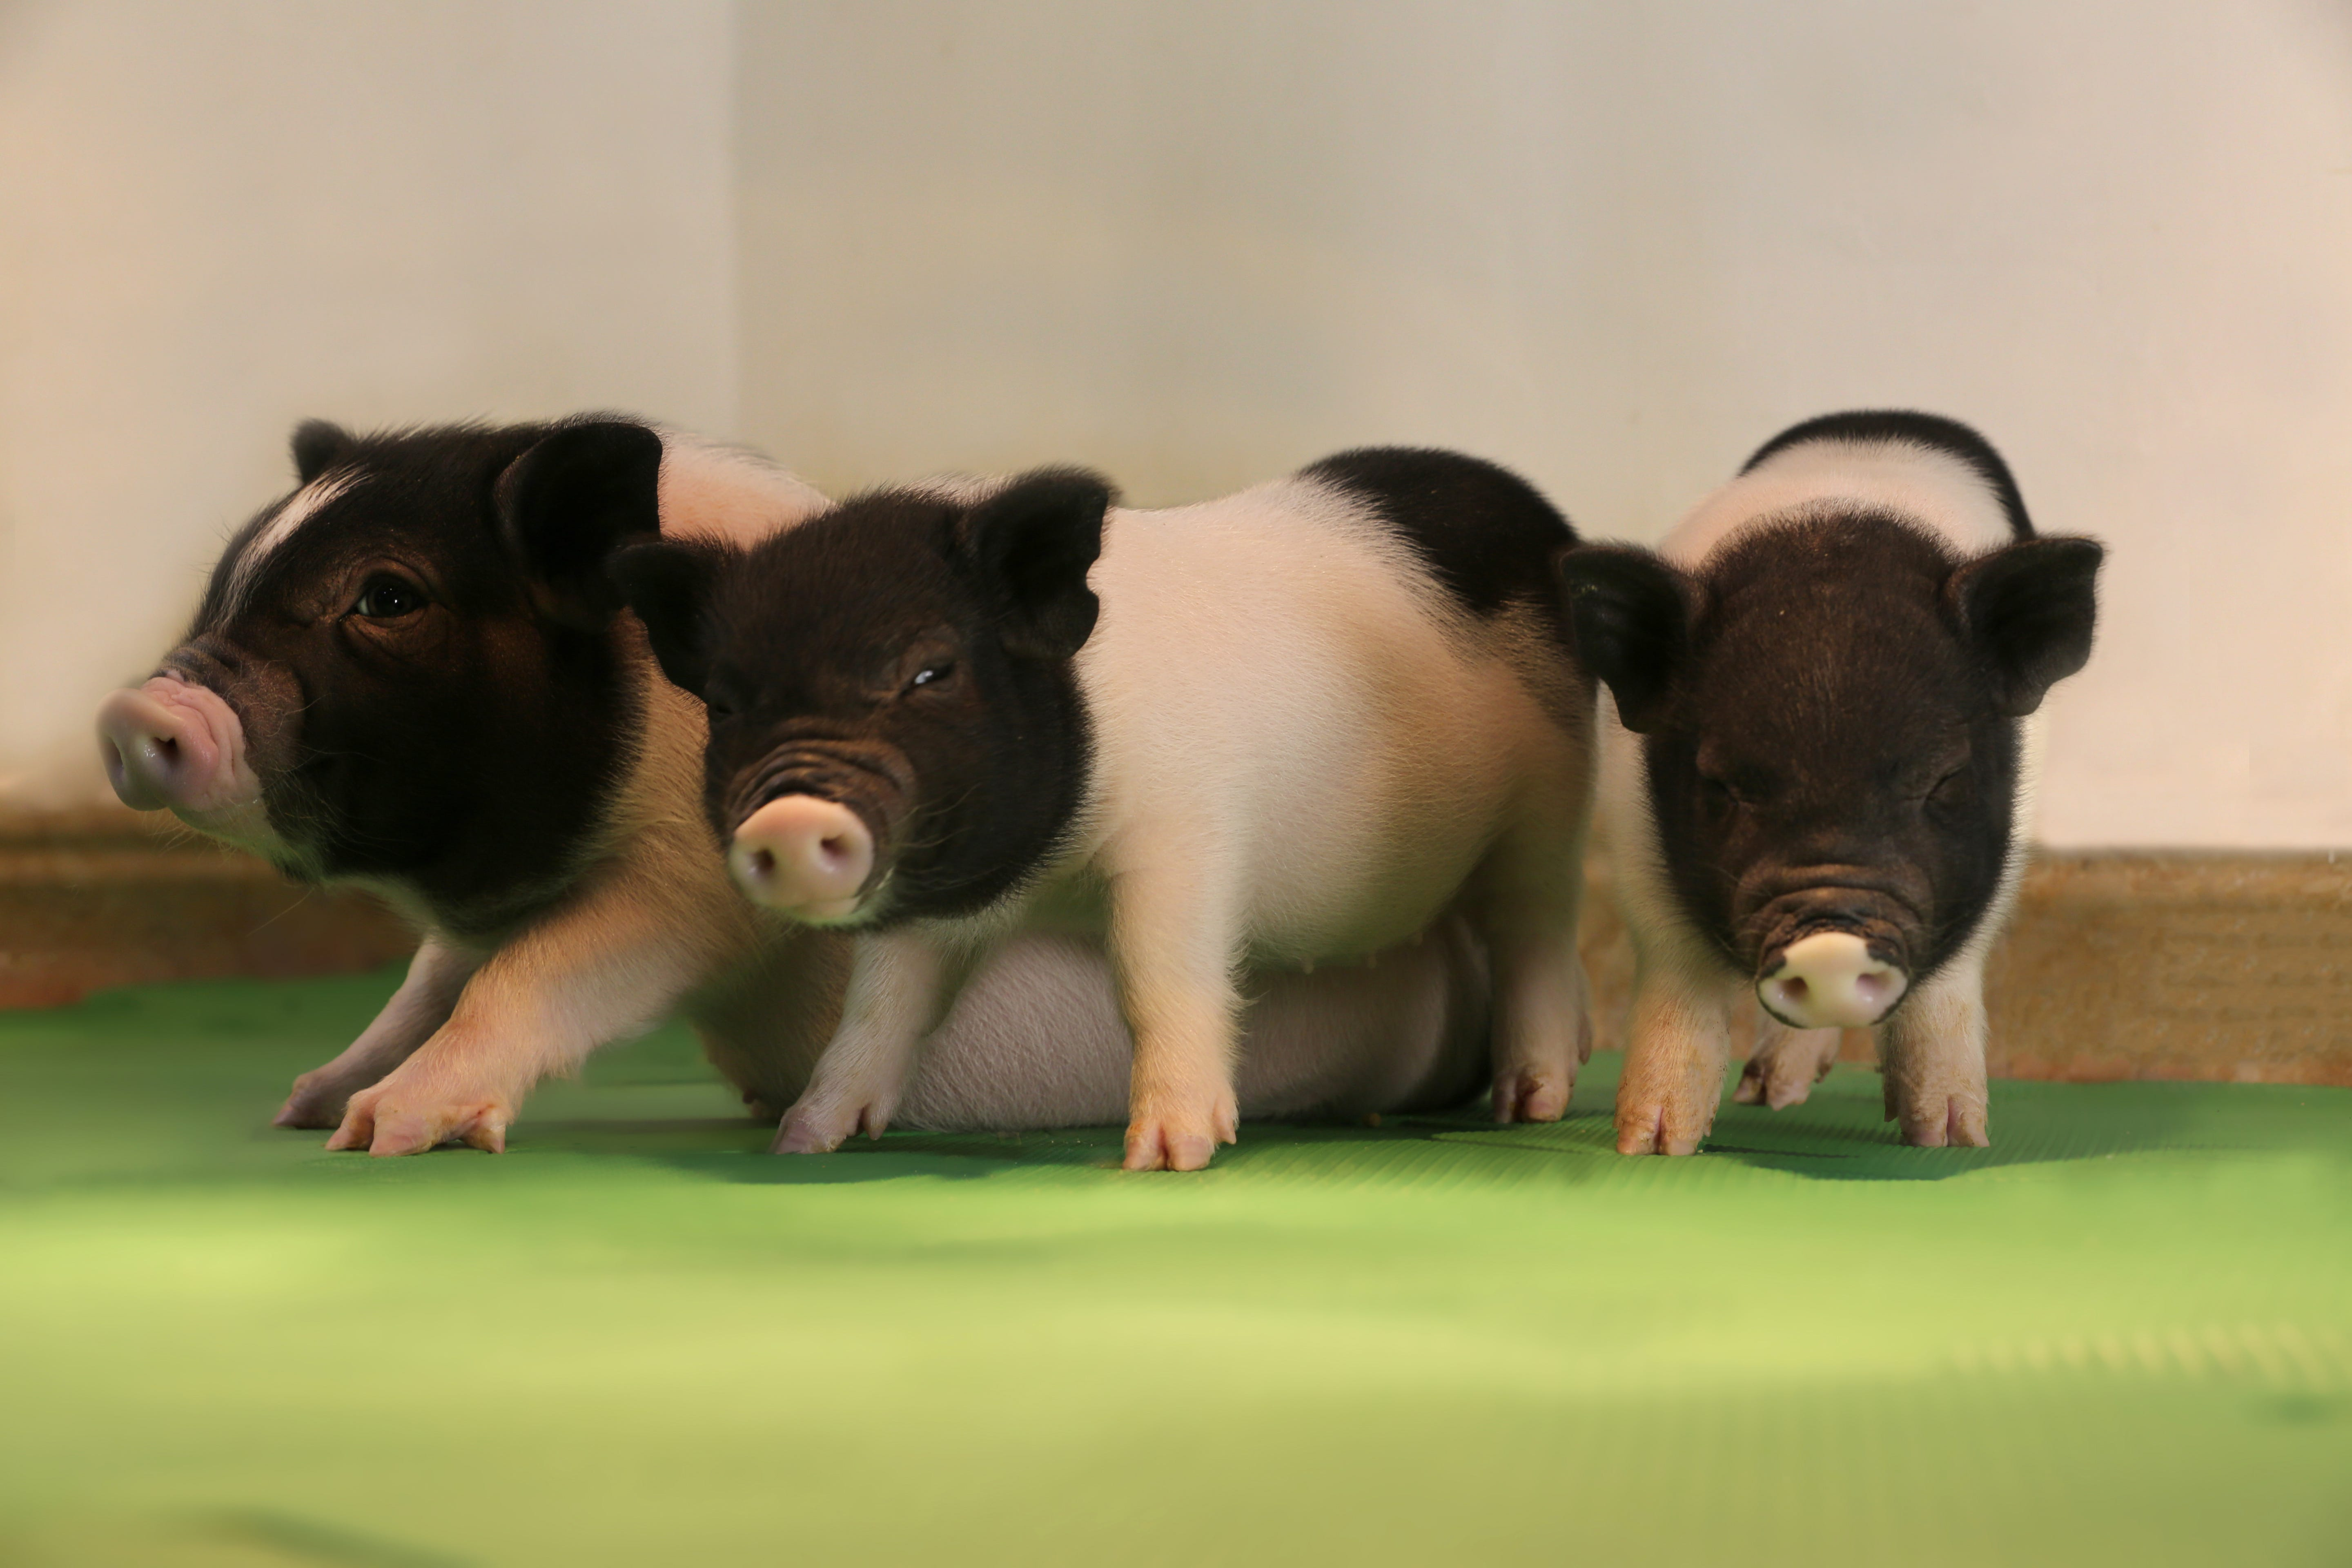 Scientists closer to using pig organs in humans, working on 'Pig 2.0'